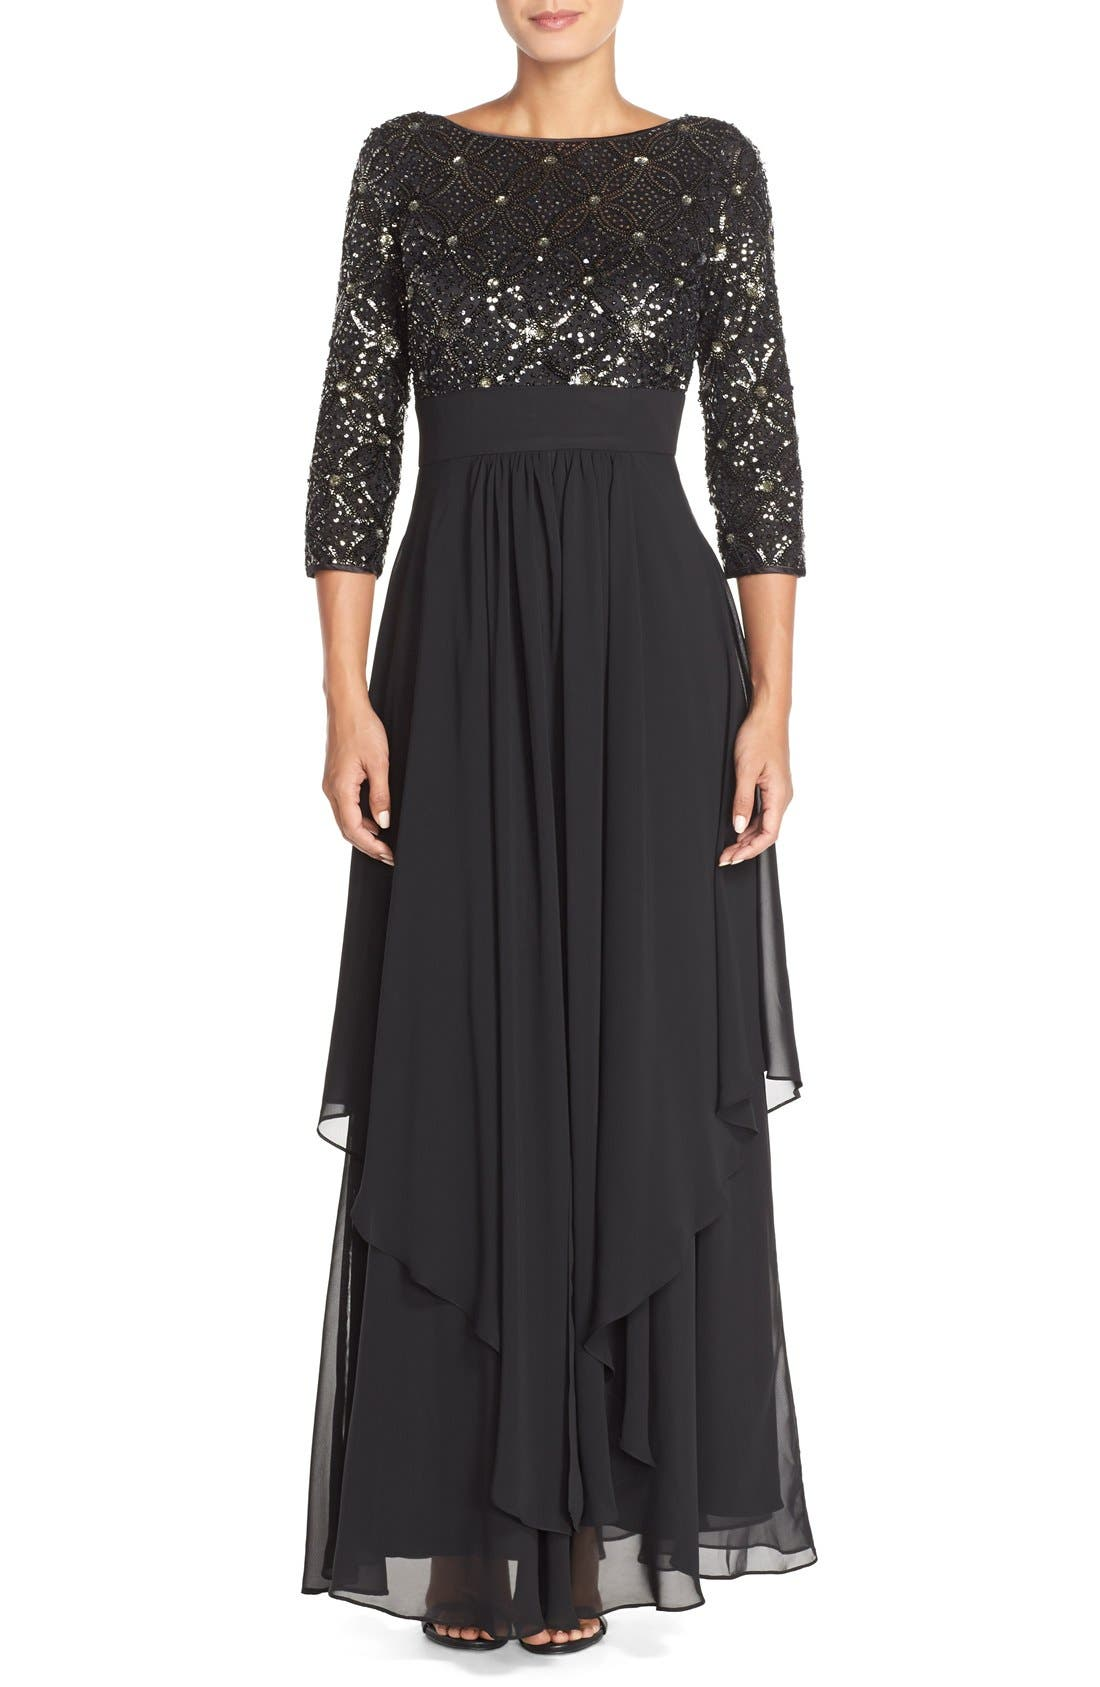 Embellished Tiered Chiffon Fit & Flare Gown,                             Main thumbnail 1, color,                             Black/ Grey